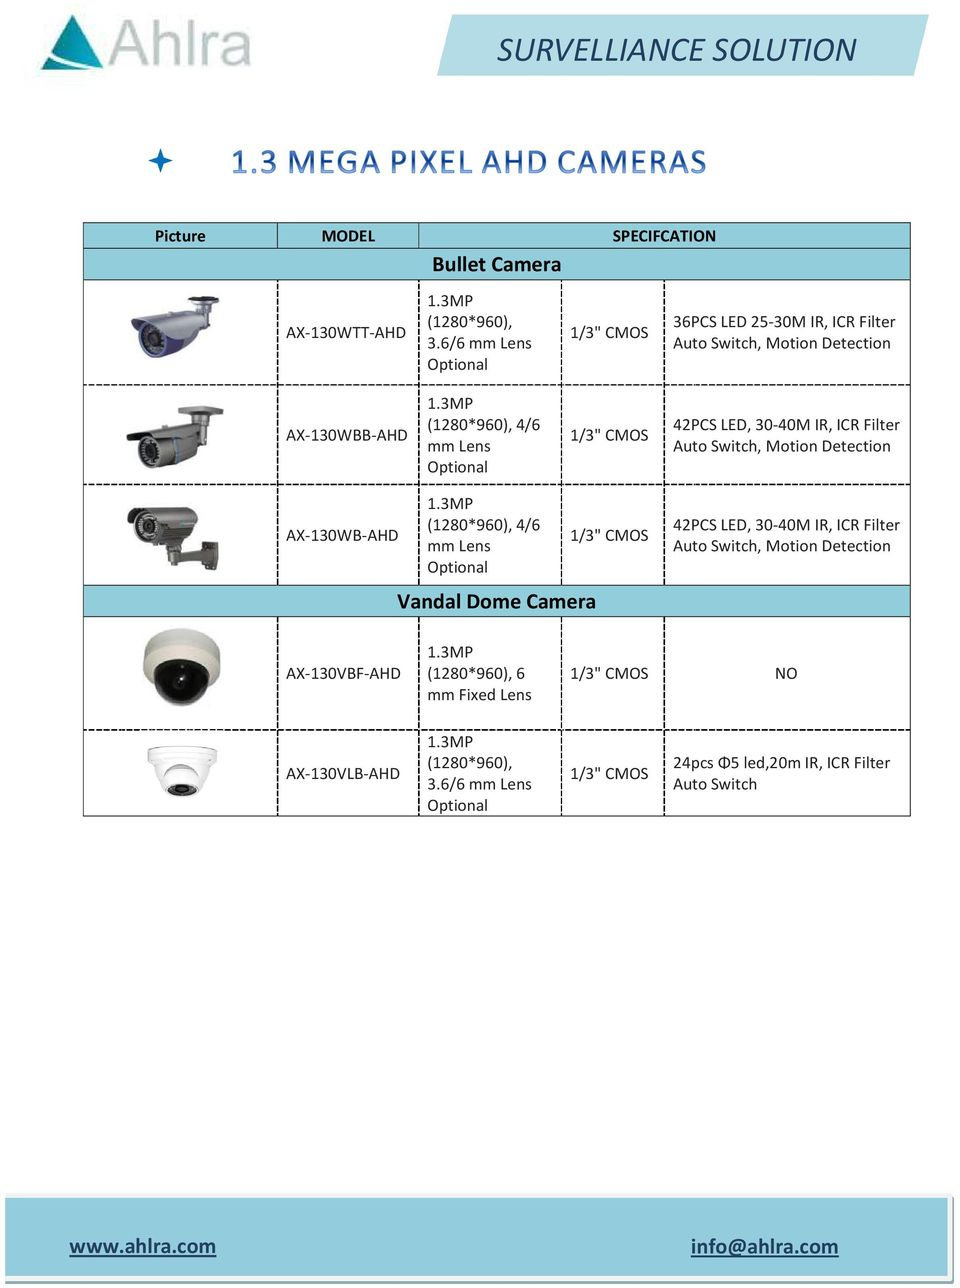 LED, 30-40M IR, ICR Filter Auto Switch, Motion Detection AX-130WB- (1280*960), 4/6 mm Lens Vandal Dome Camera CMOS 42PCS LED,